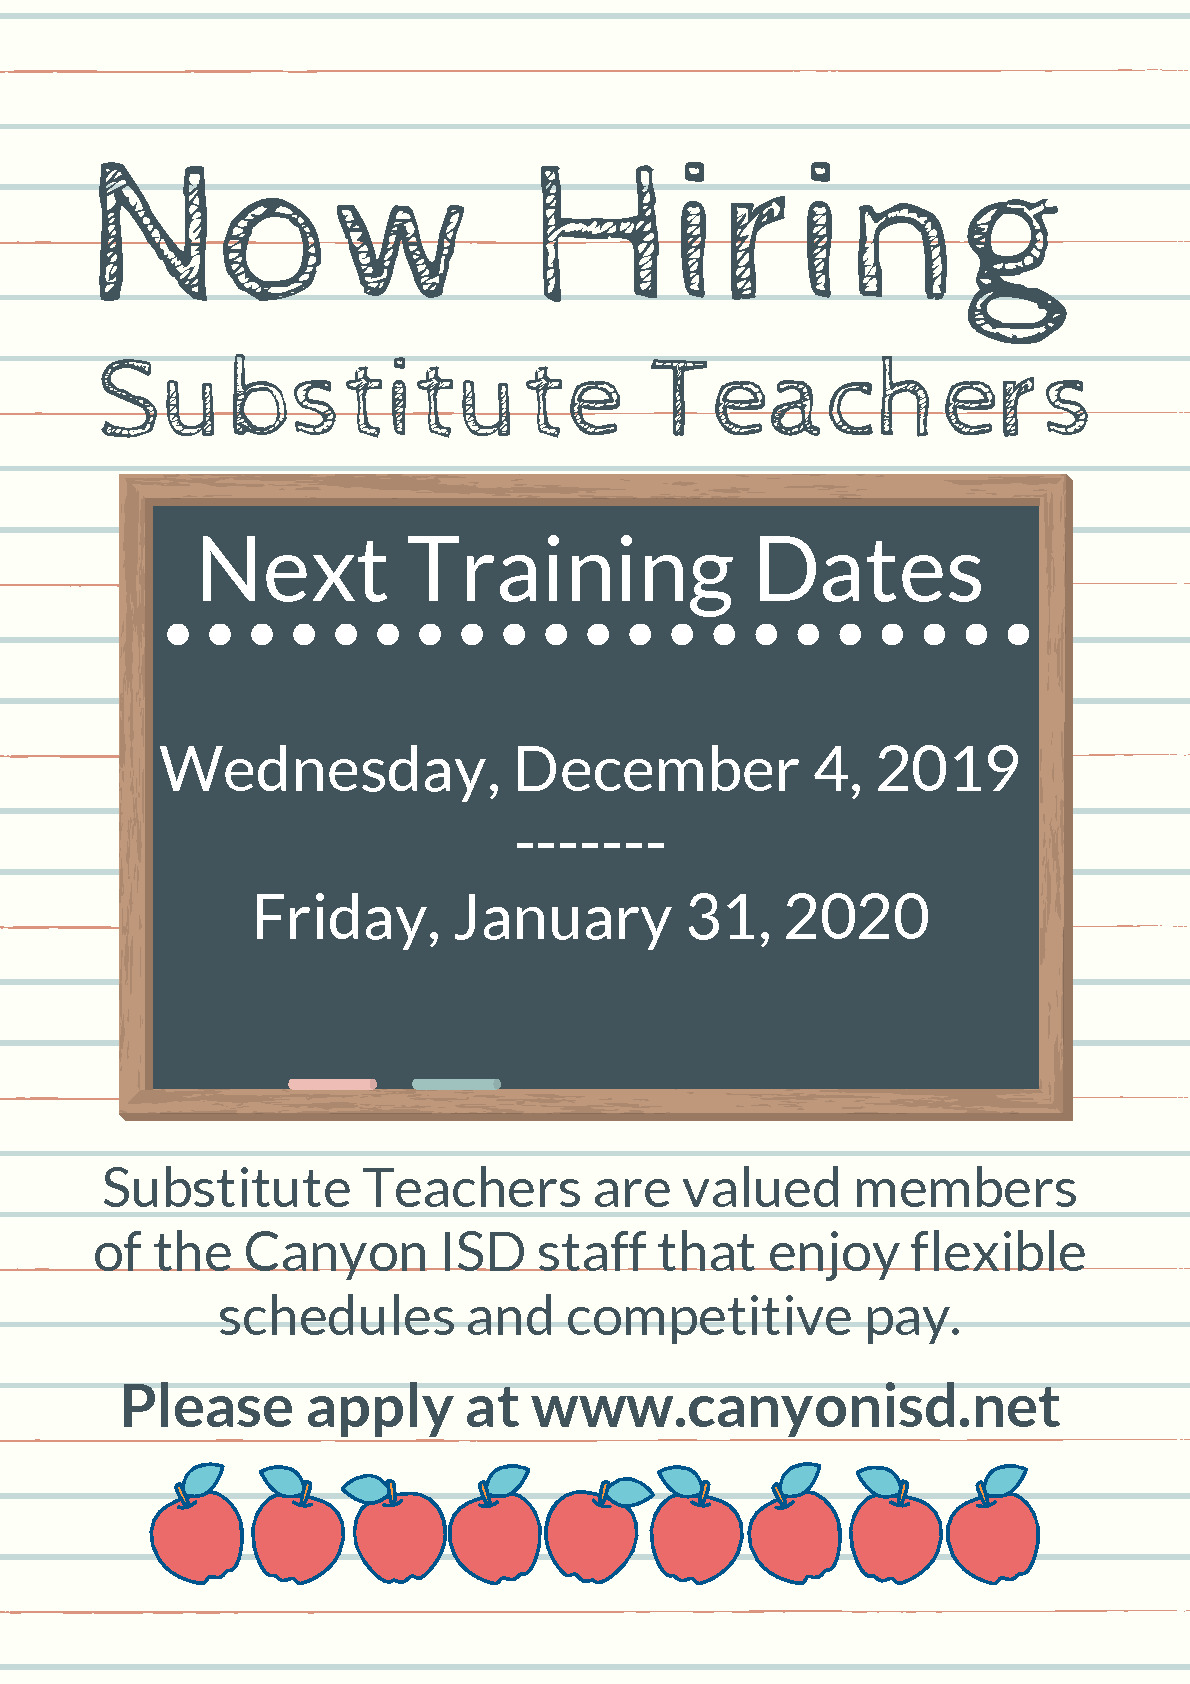 Canyon ISD is having substitute training on Wednesday December 4 2019 and Friday January 31 2020